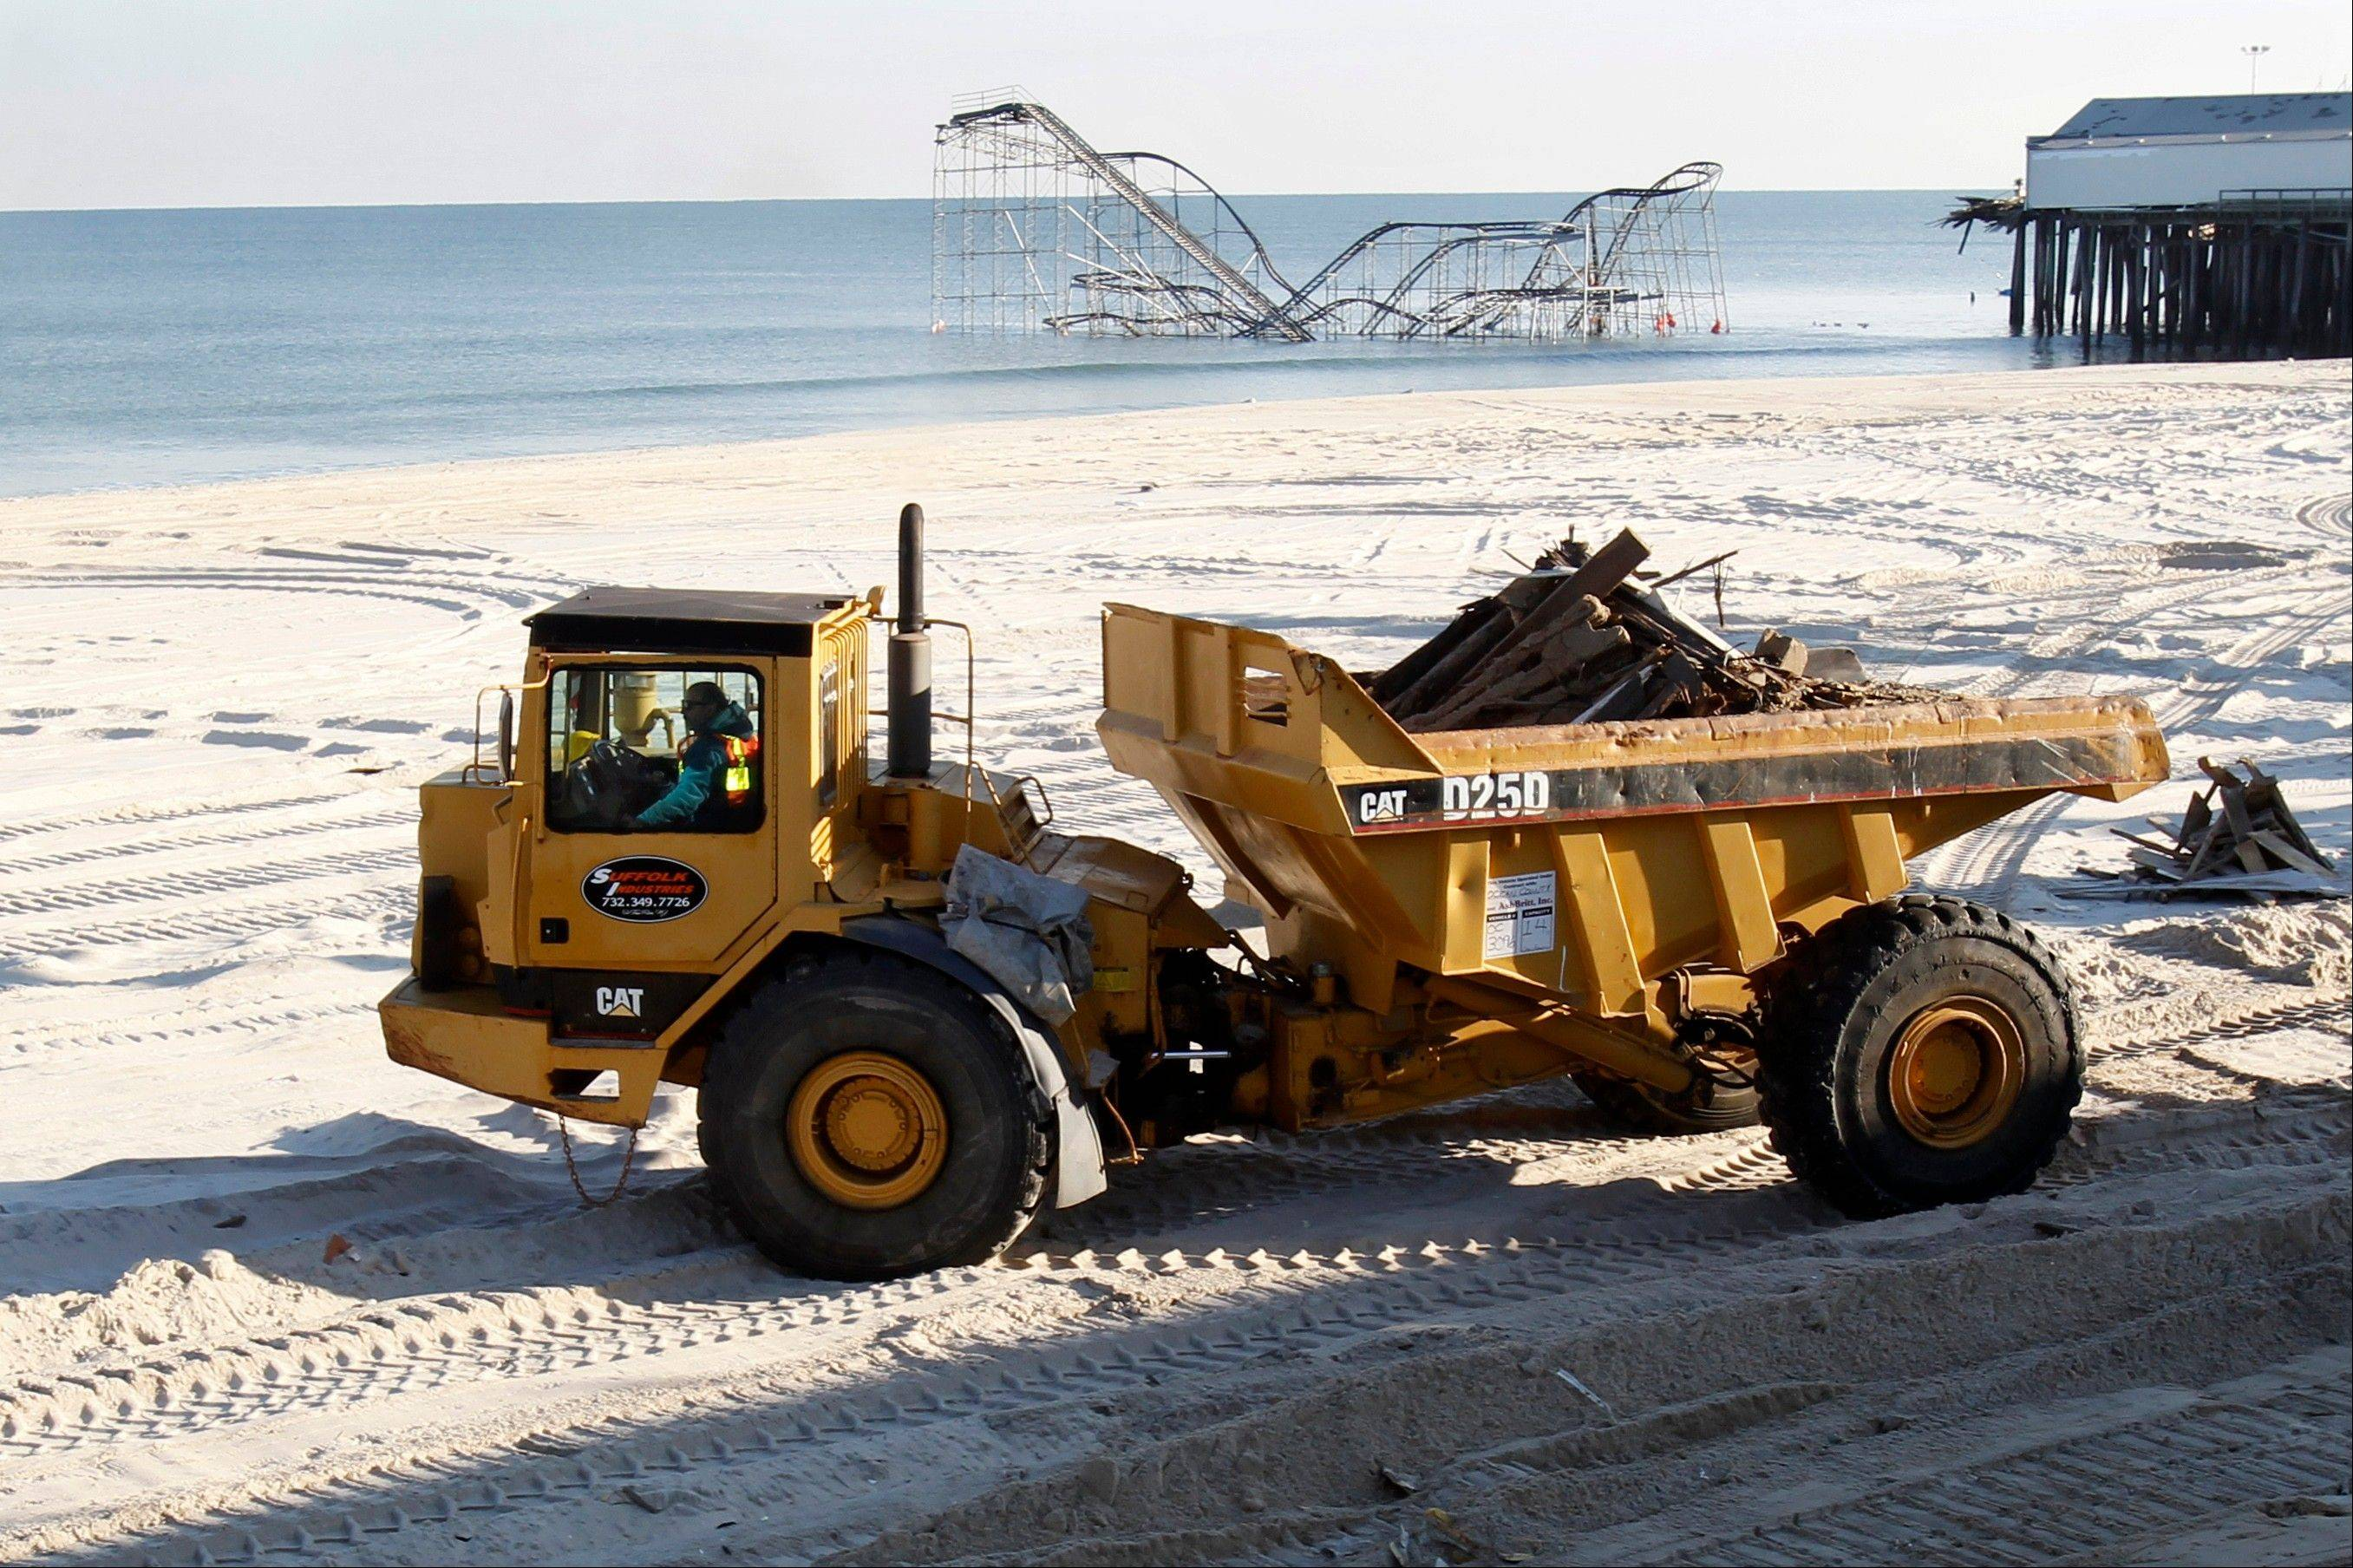 A large construction vehicle carries remnants of the boardwalk Thursday in Seaside Heights, N.J., that was destroyed two months ago by Superstorm Sandy. Under intense pressure from angry Republicans, House Speaker John Boehner has agreed to a vote this week on aid for Superstorm Sandy recovery.